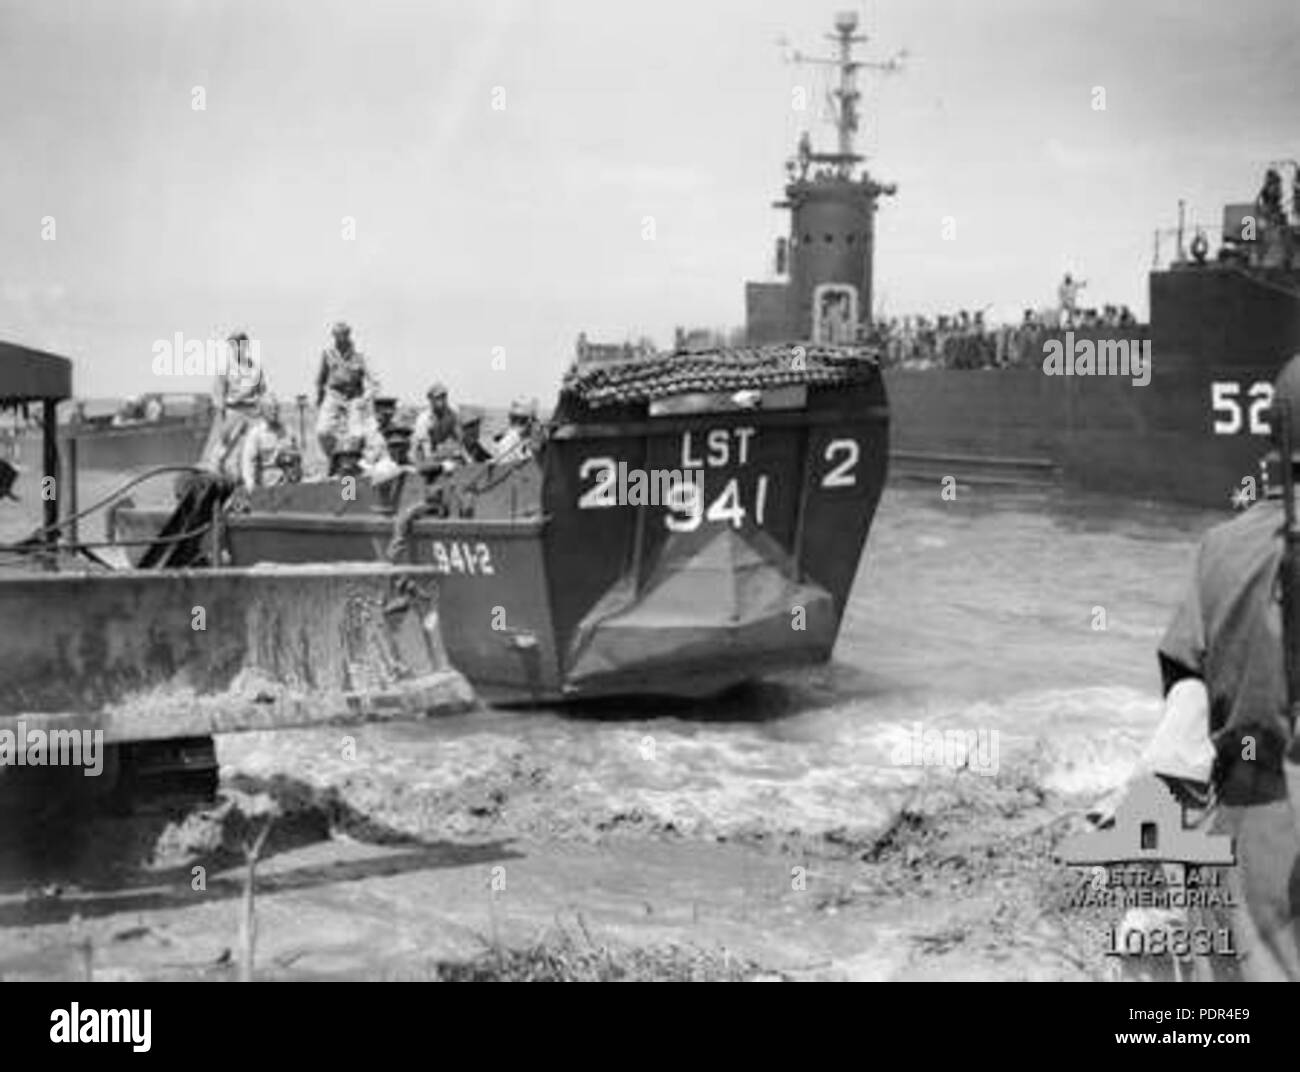 78 LCVP2 from USS LST-941 Brunei Bay 10 June 1945 - Stock Image